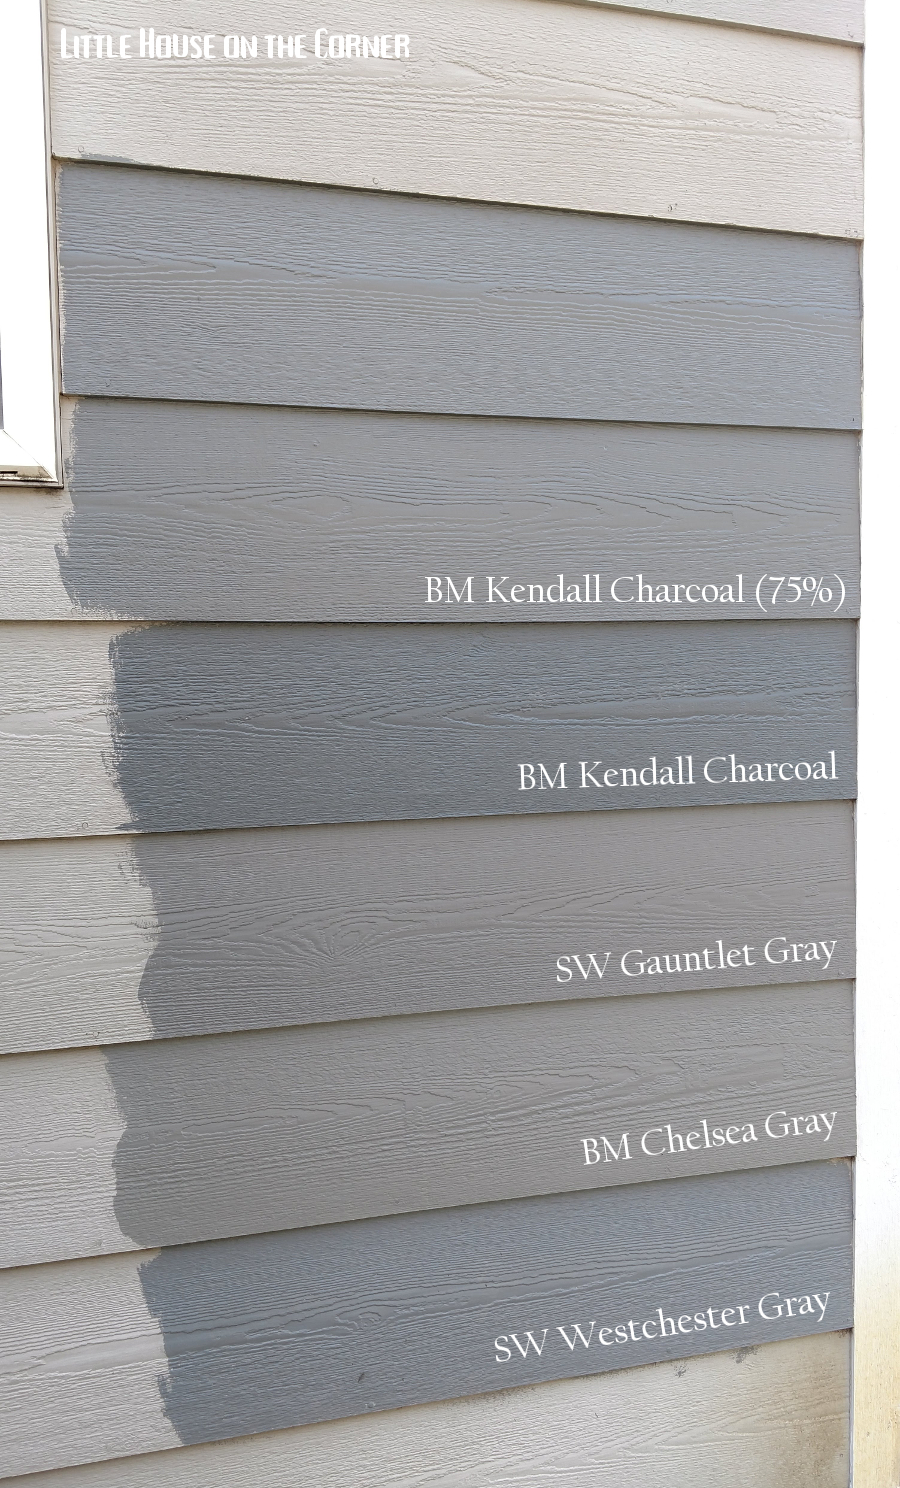 Kendall Charcoal Sherwin Williams Tyres2c